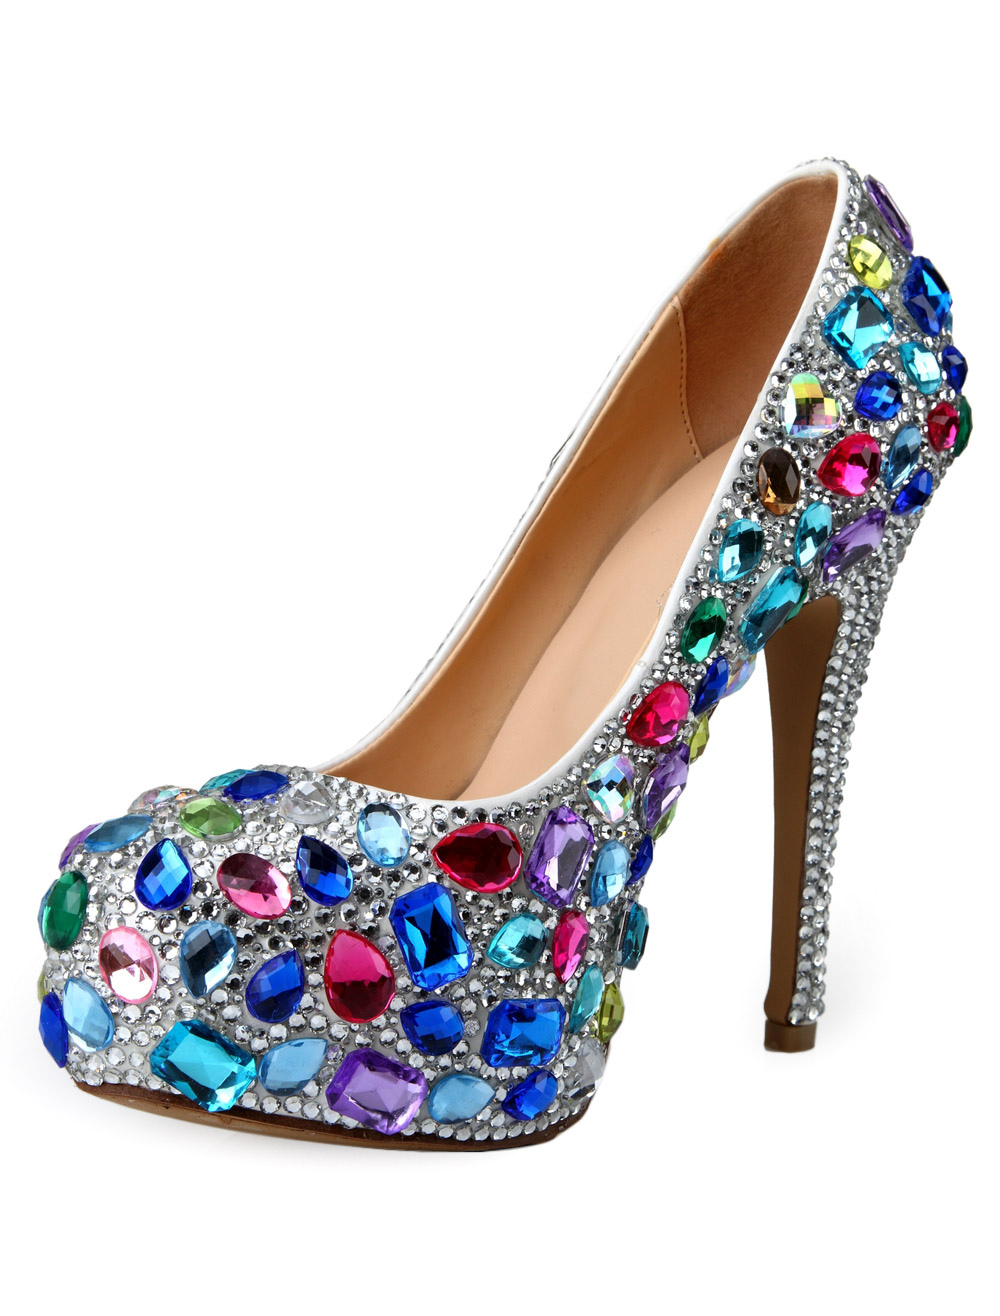 Sexy Multi Color Stiletto Heel Patent PU Round Toe High Heels For Woman